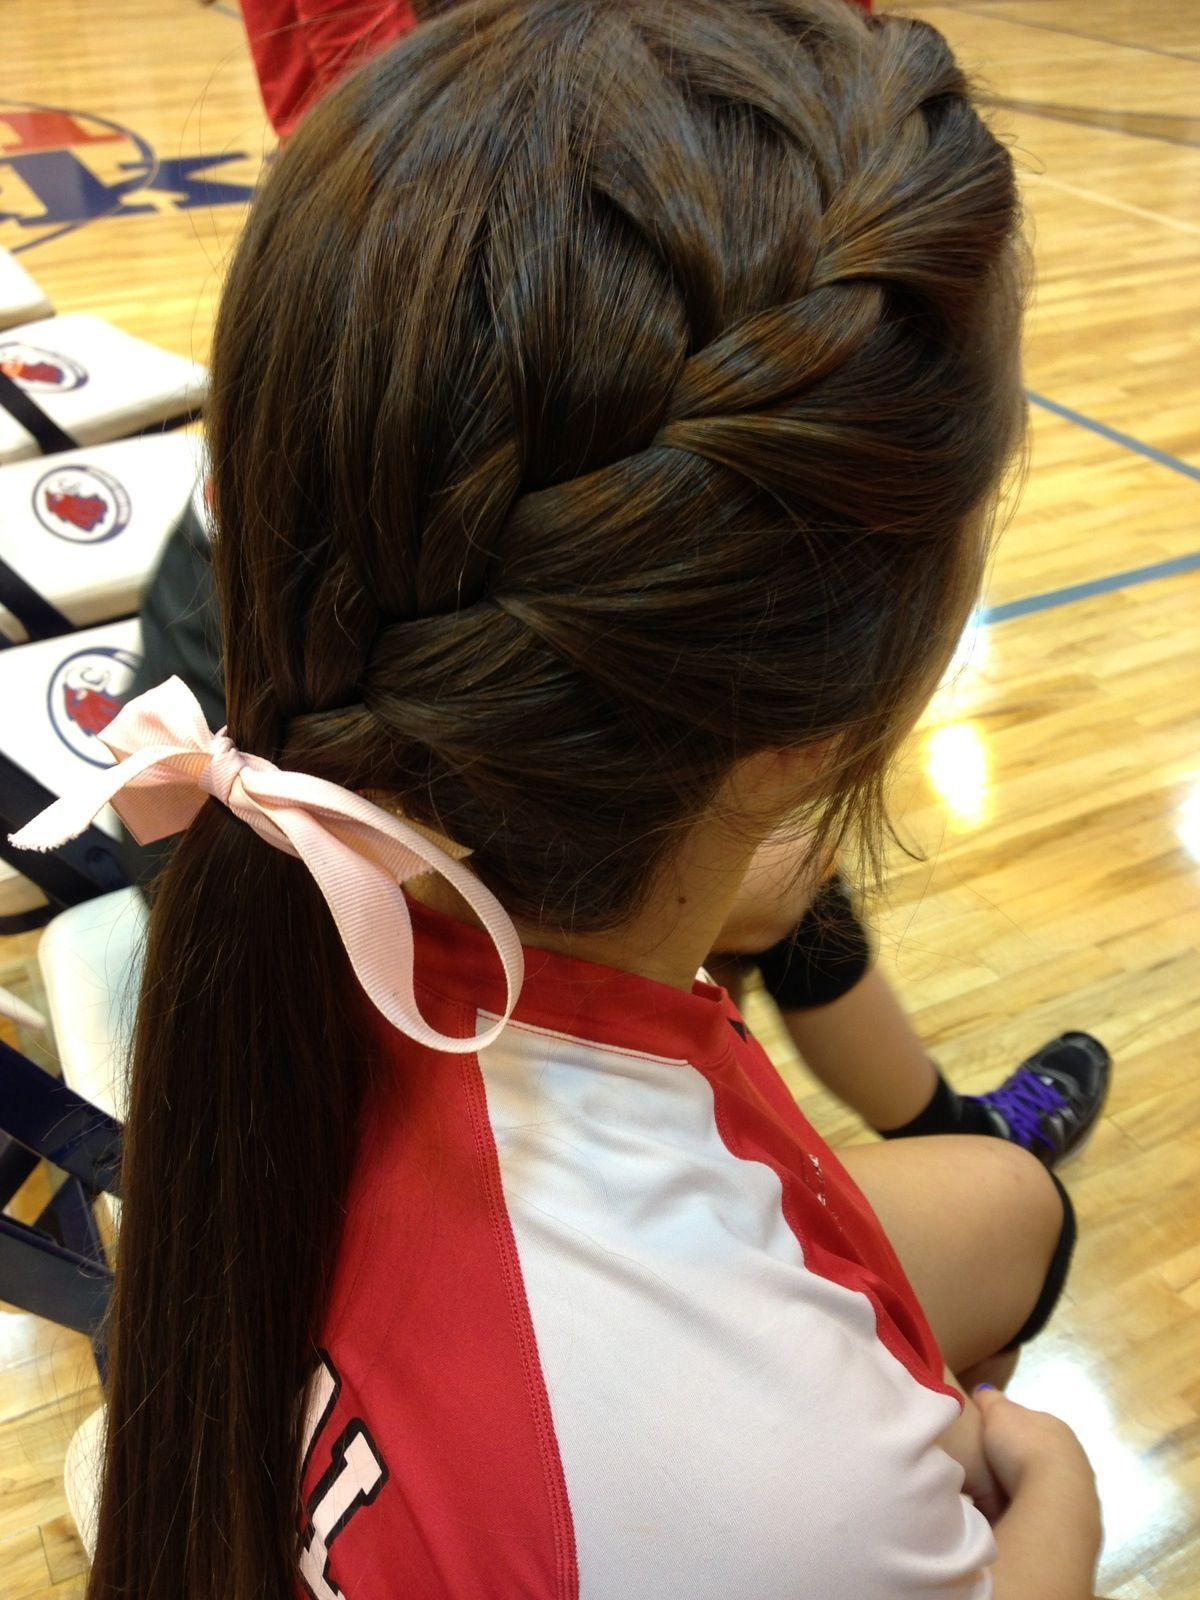 Cool Sports Haircuts Pictures To Pin On Pinterest Pins2pin Sporty Hairstyles Cheer Hair Volleyball Hairstyles